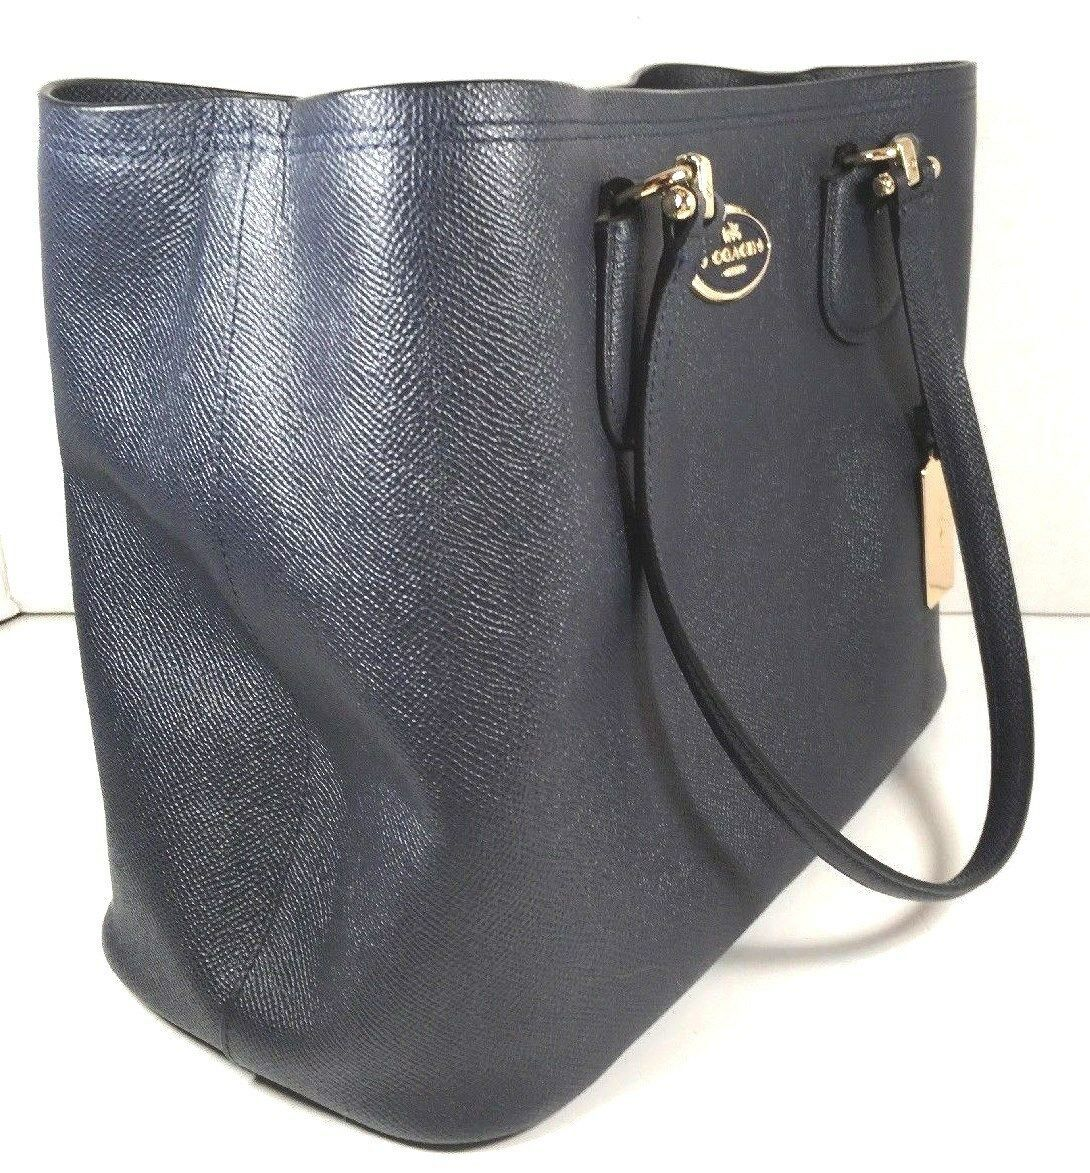 Coach Kitt Carryall Tote Navy Blue Crossgrain Leather Gold Tone HW with Dustbag image 3